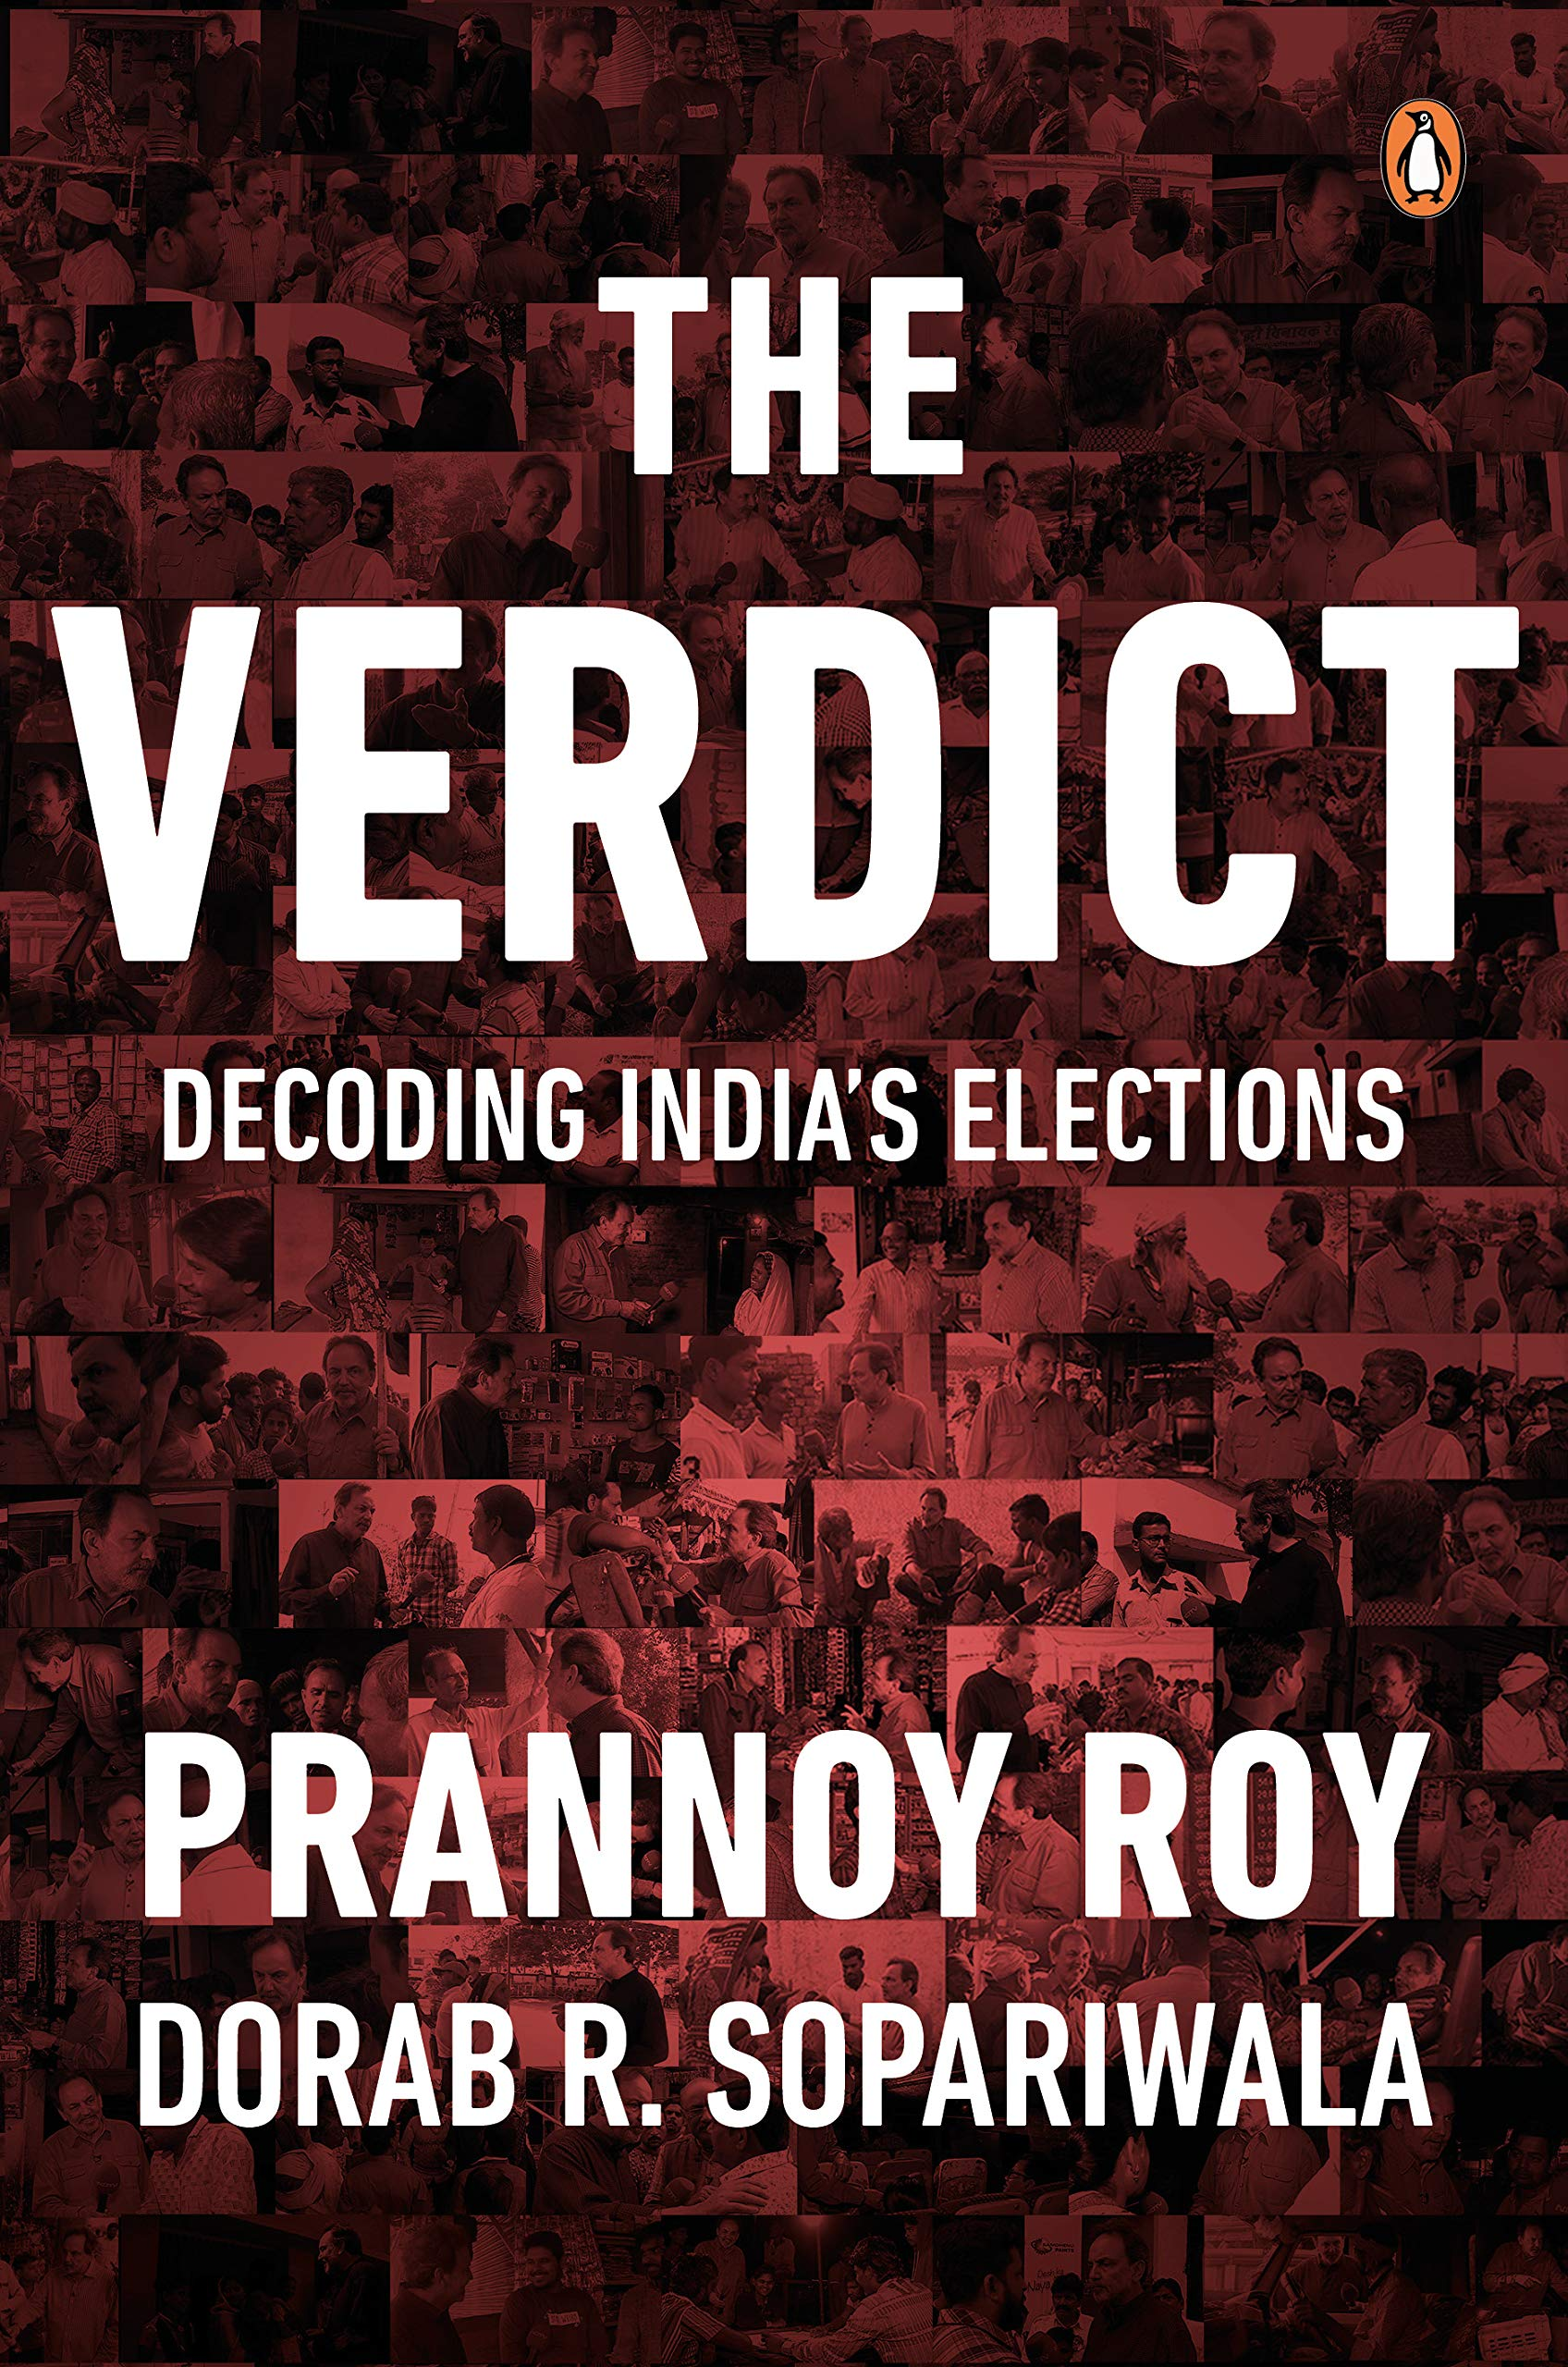 Prannoy Roy and Dorab R. Sopariwala, The Verdict: Decoding India's Elections (New Delhi: Penguin India, 2019). #1 bestseller in India. -